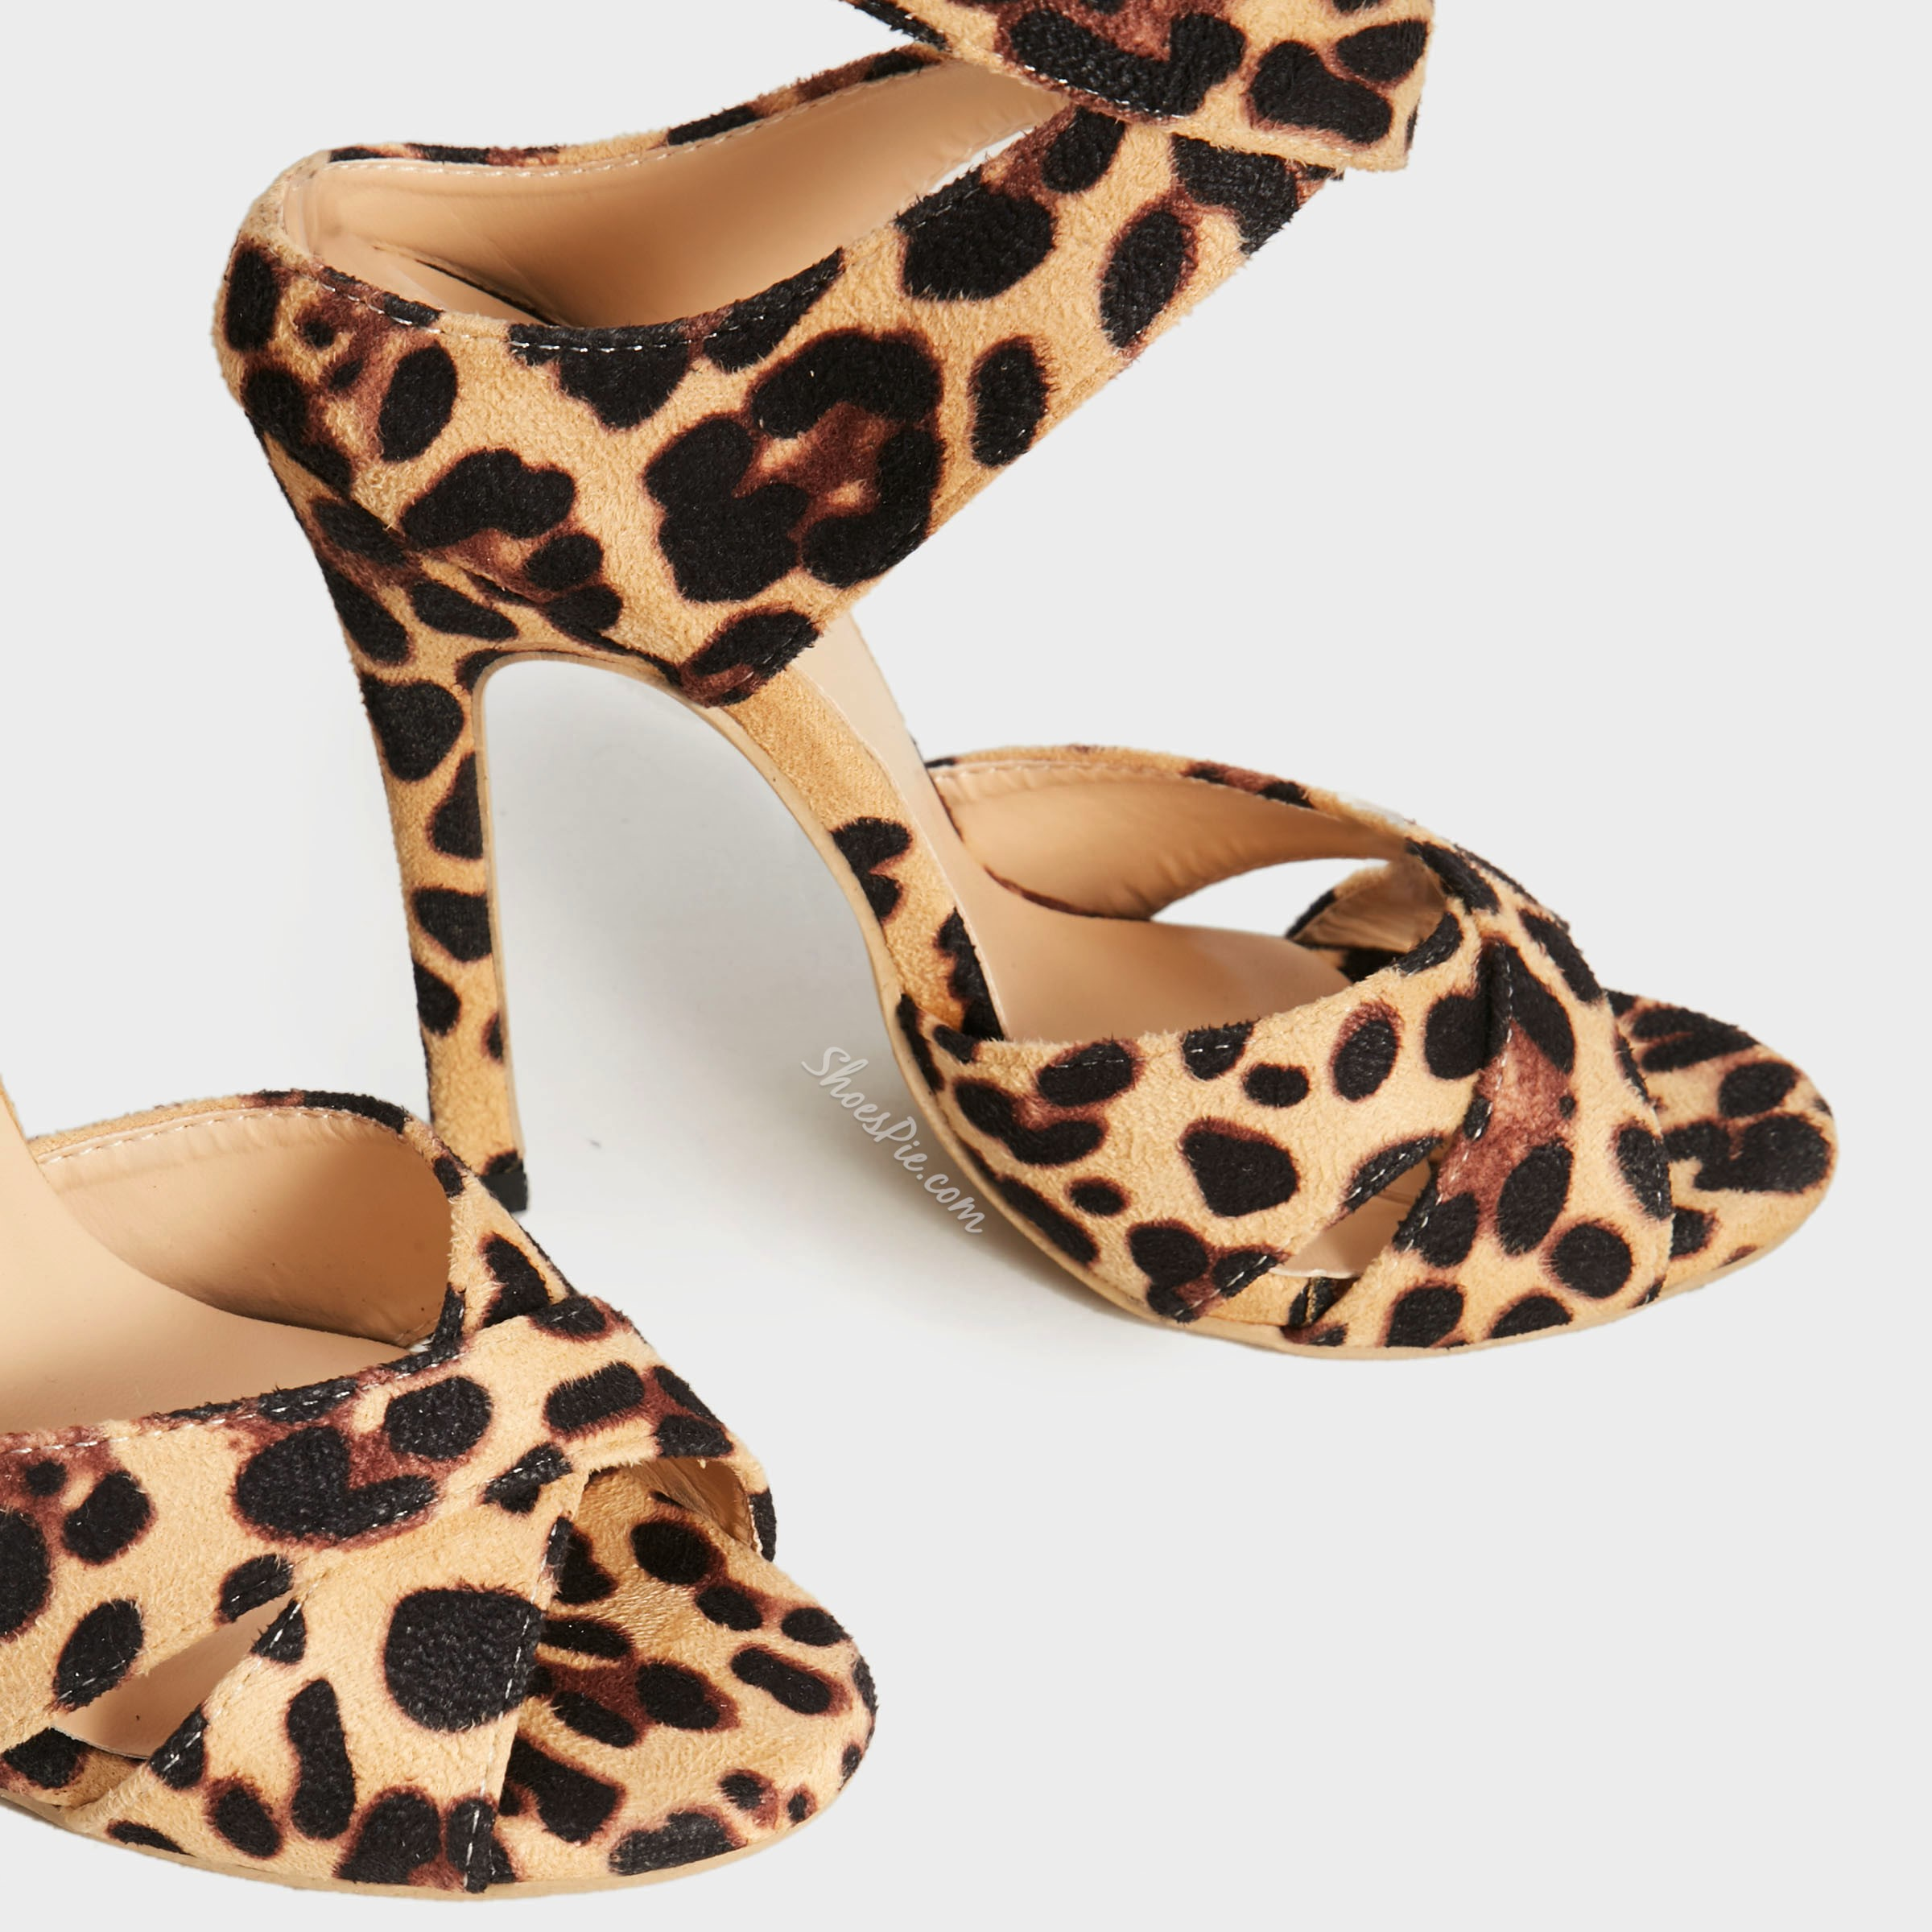 Shoespie Trendy Peep Toe Ankle Strap Stiletto Heel Leopard Dress Sandals